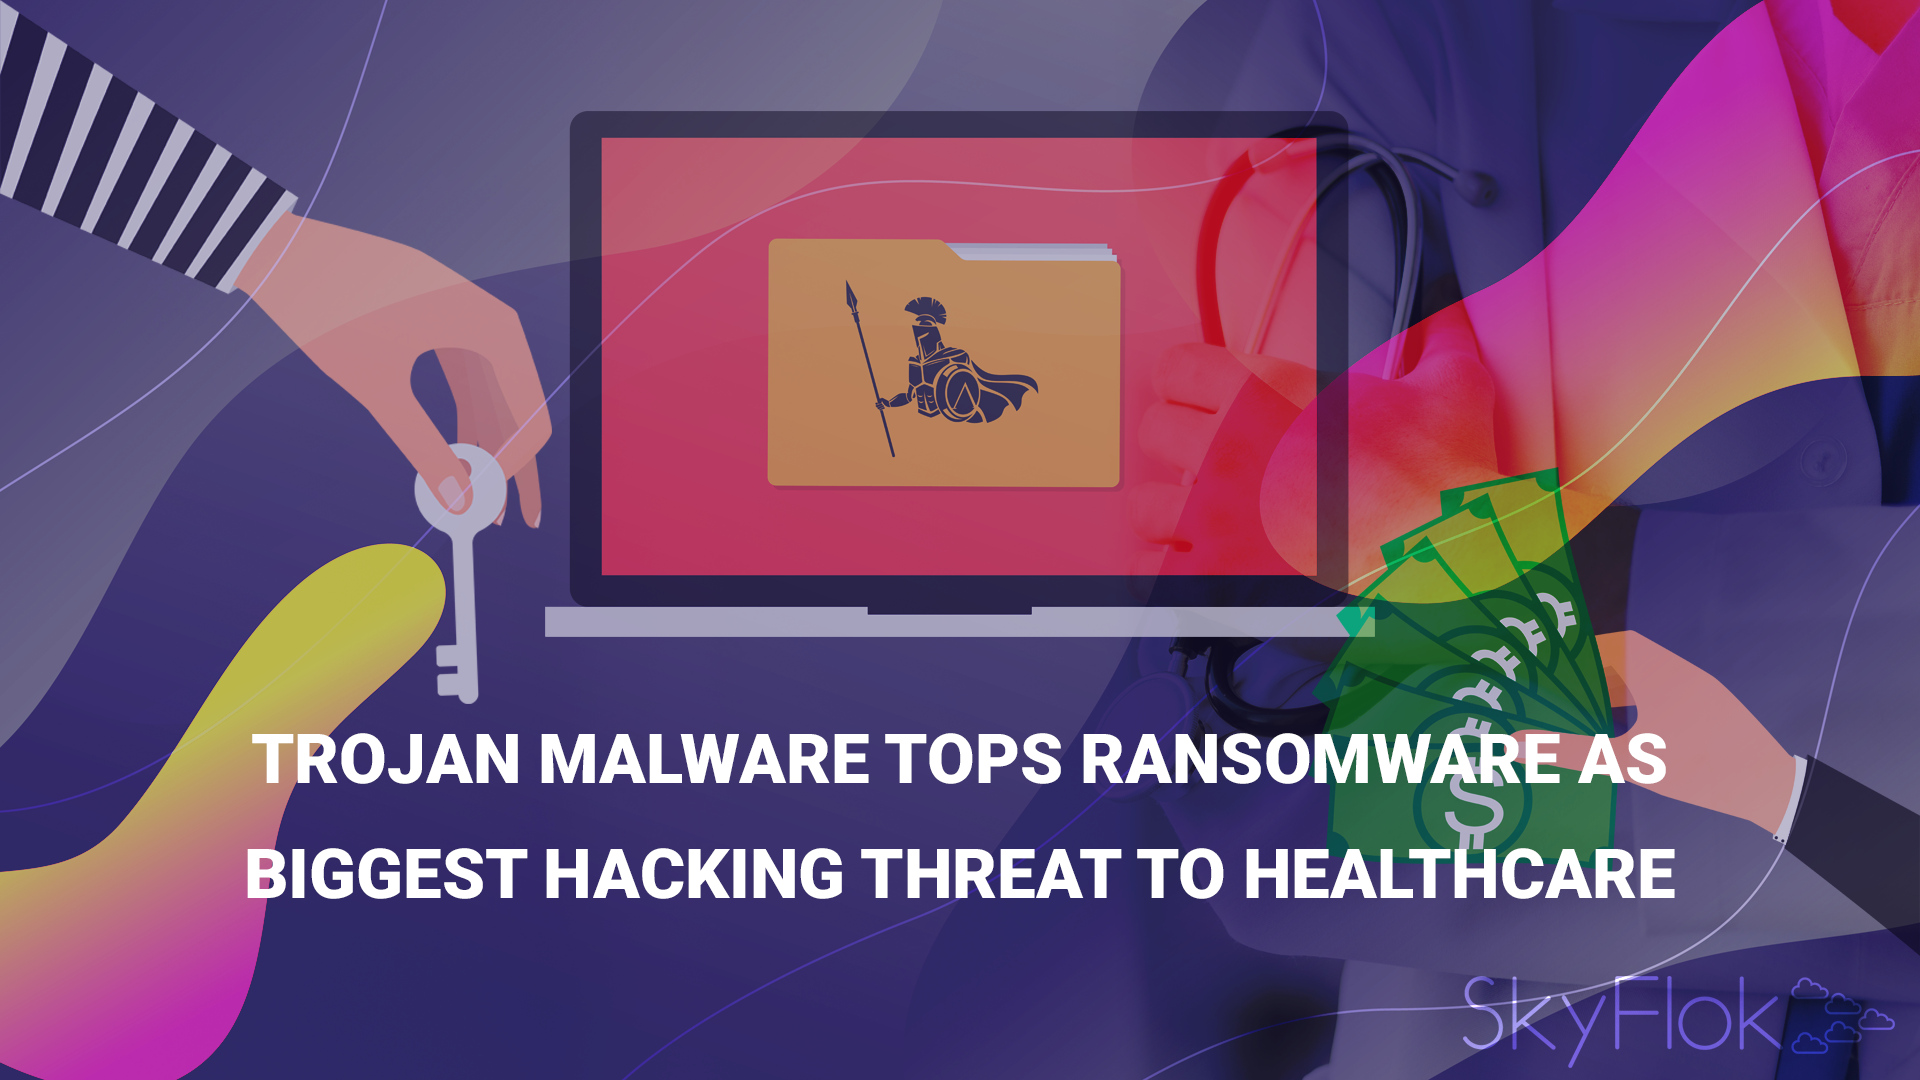 Trojan Malware Tops Ransomware as Biggest Hacking Threat to Healthcare